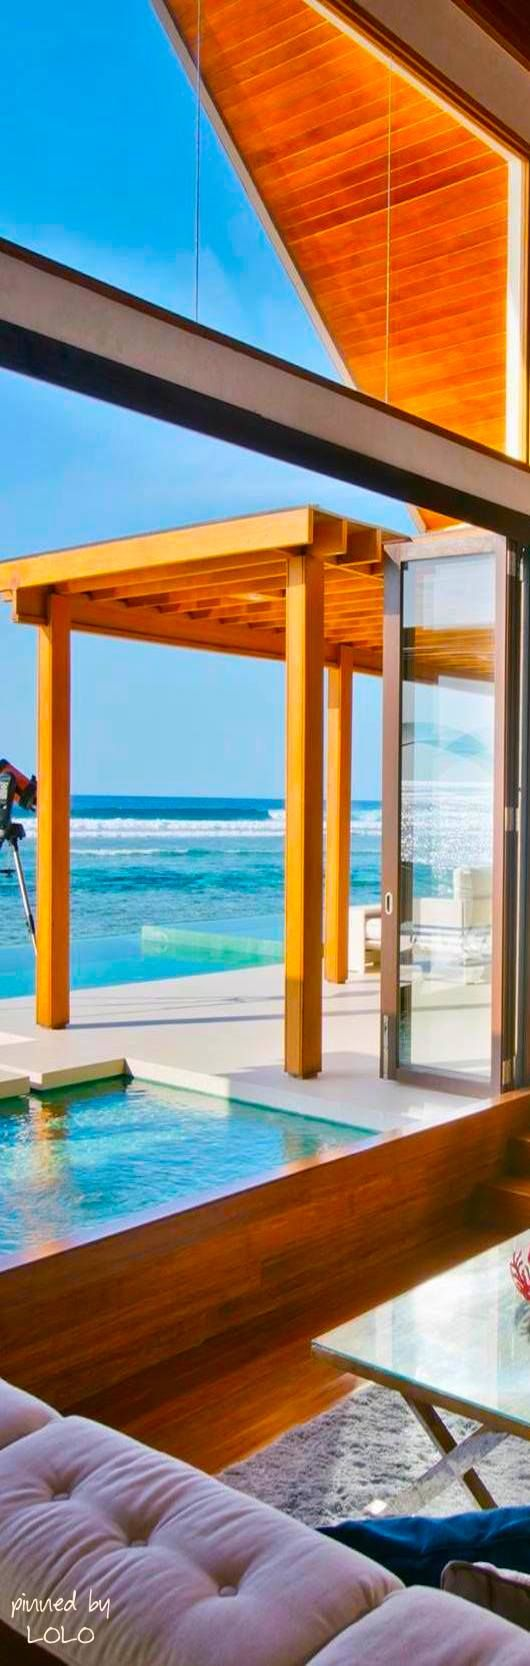 Luxury beach homes exterior - Luxury Beach Homes Niyama Maldives A Per Aquum